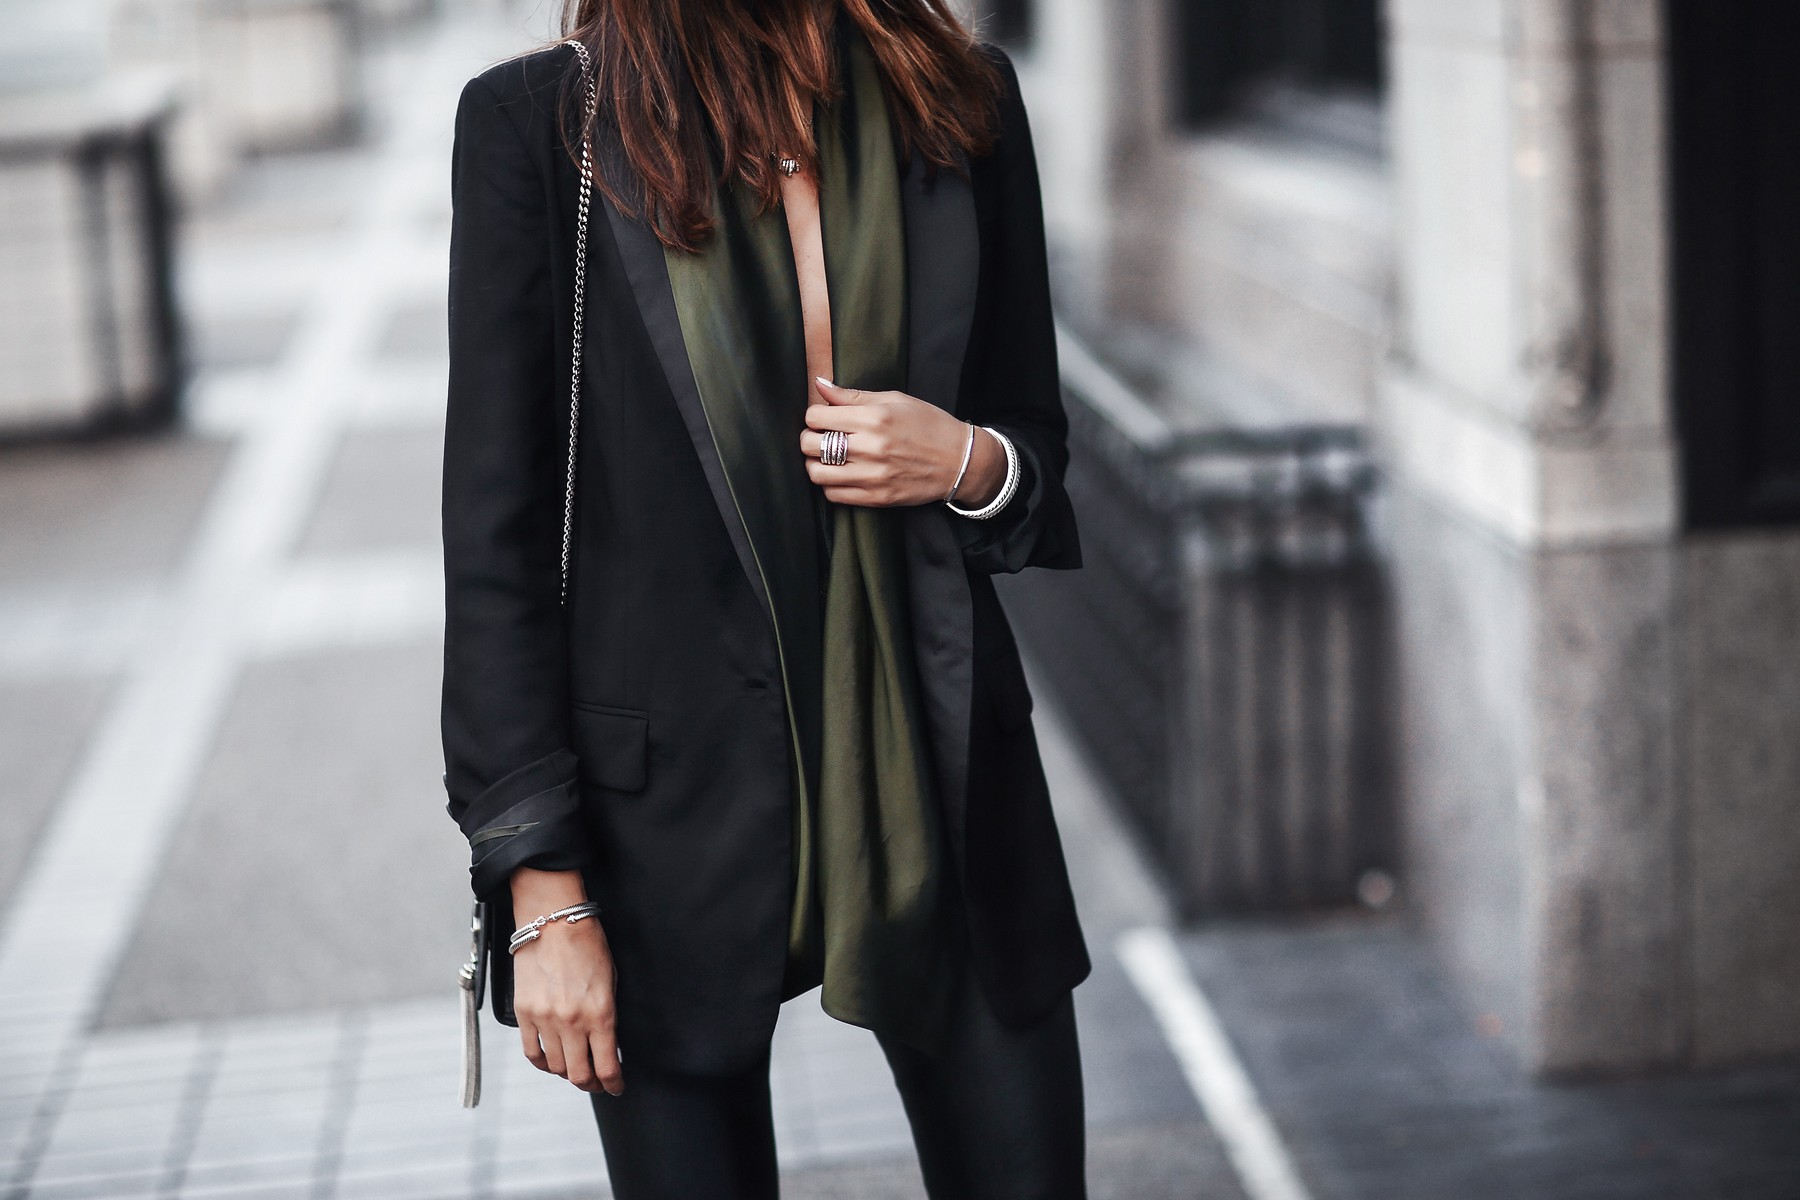 satin green top and blazer, silver jewelry